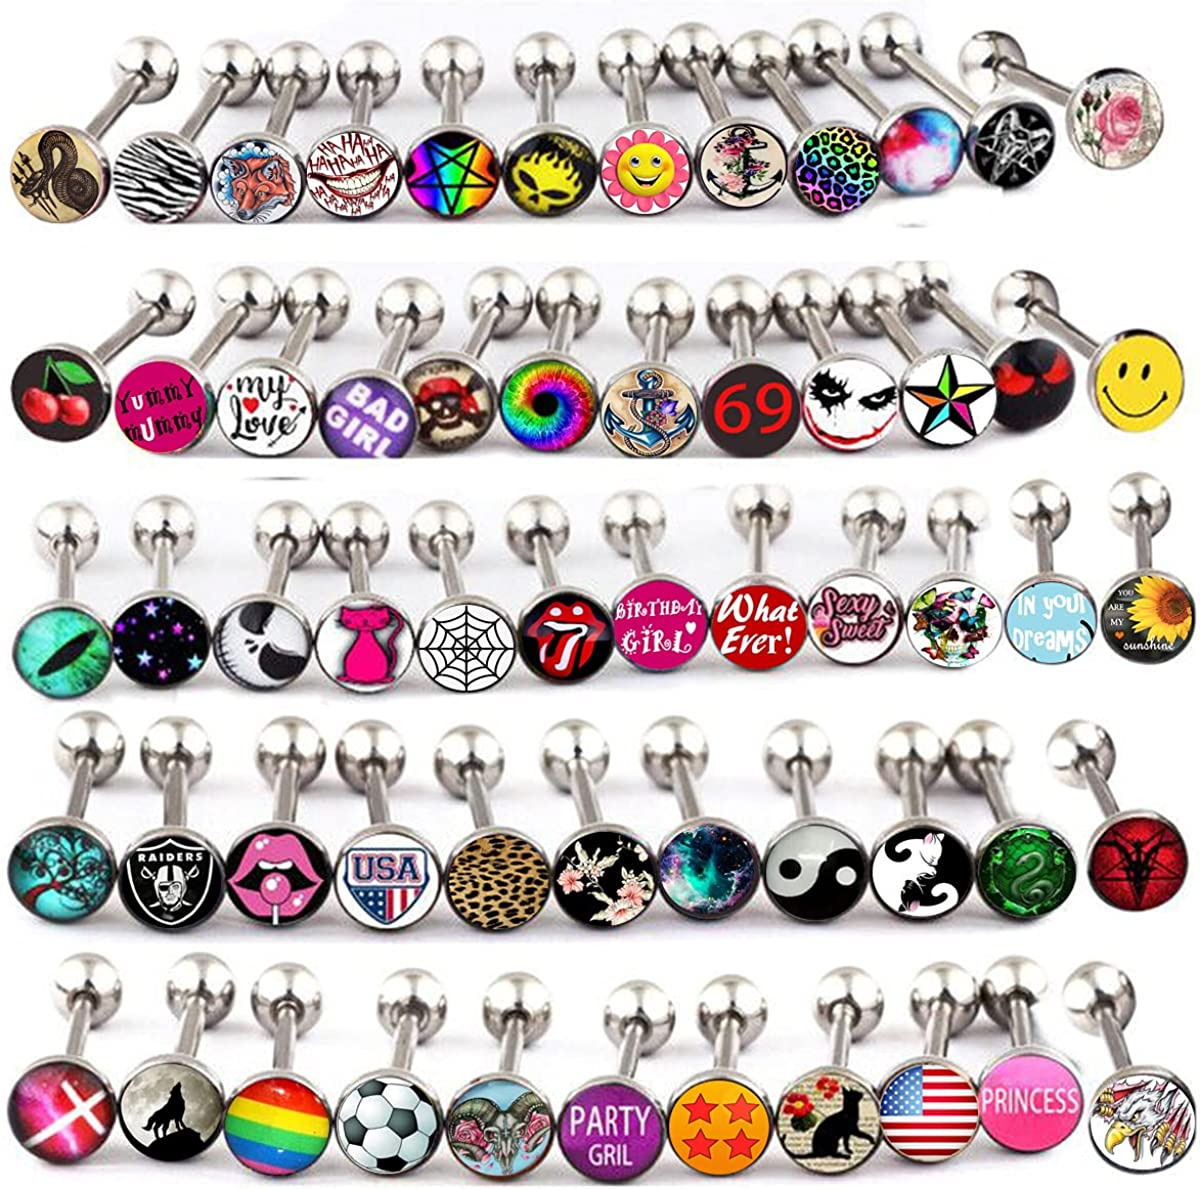 Details about  /7pcs Colorful Steel Bar Tongue Rings Body Piercing Jewelry Tounge Bars Cool